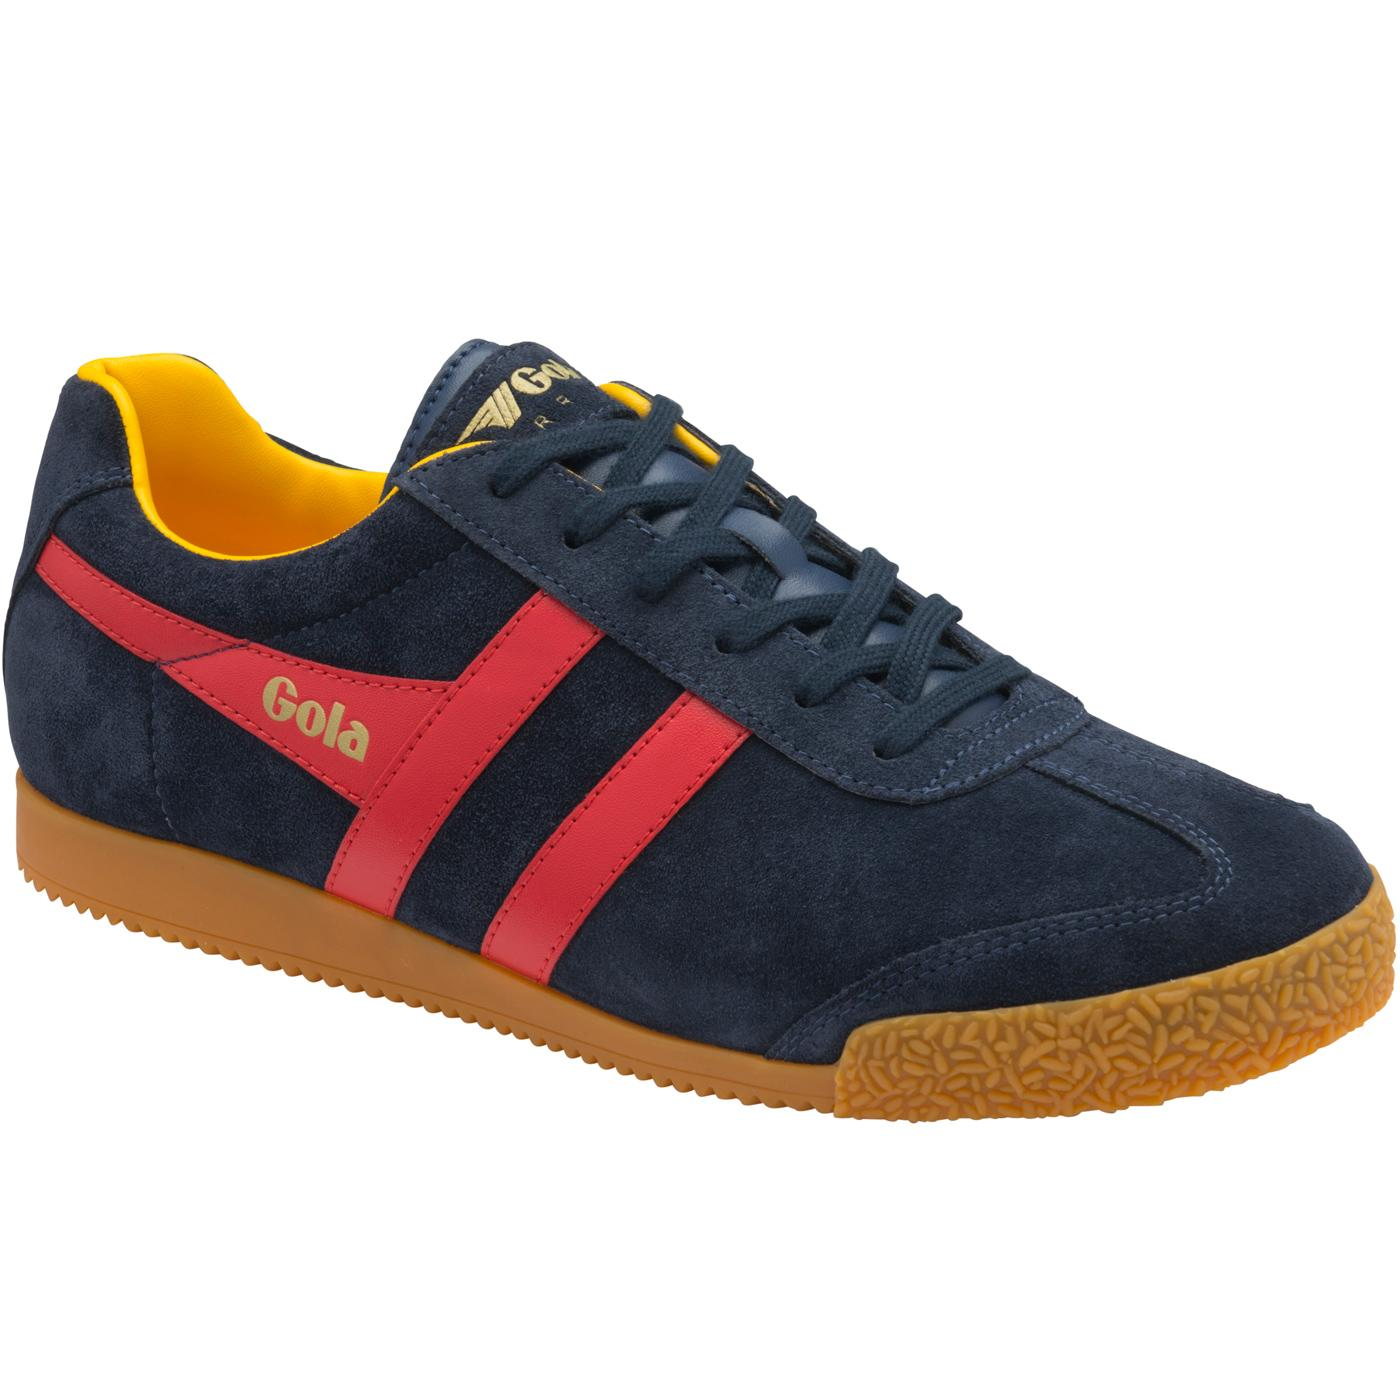 GOLA Harrier Suede Mens Retro 70s Trainers (N/R/S)